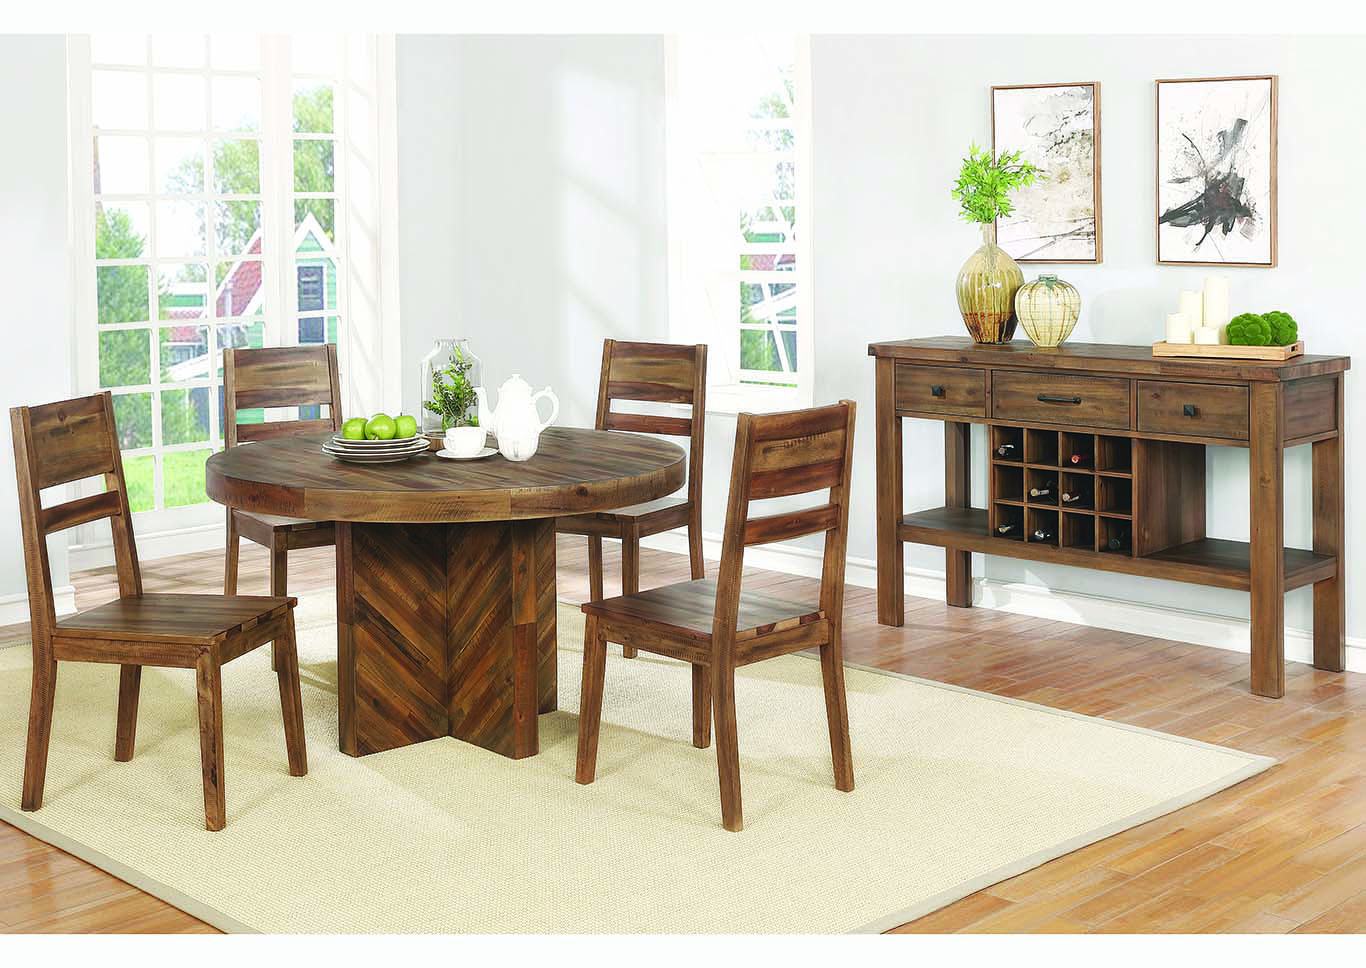 Varied Natural Round Dining Table w/4 Side Chairs,Coaster Furniture